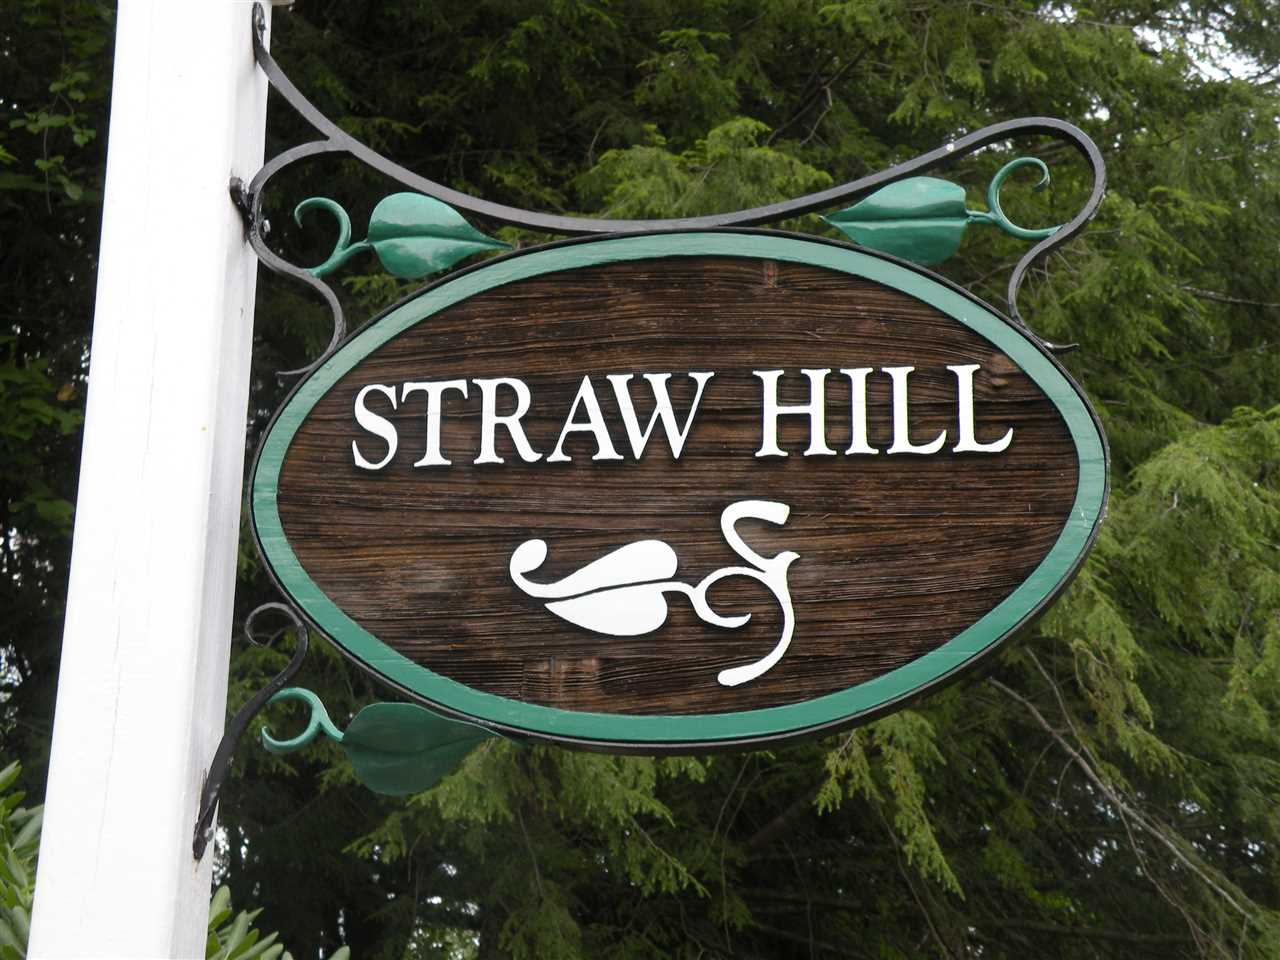 154 Straw Hill 154, Manchester, NH 03104